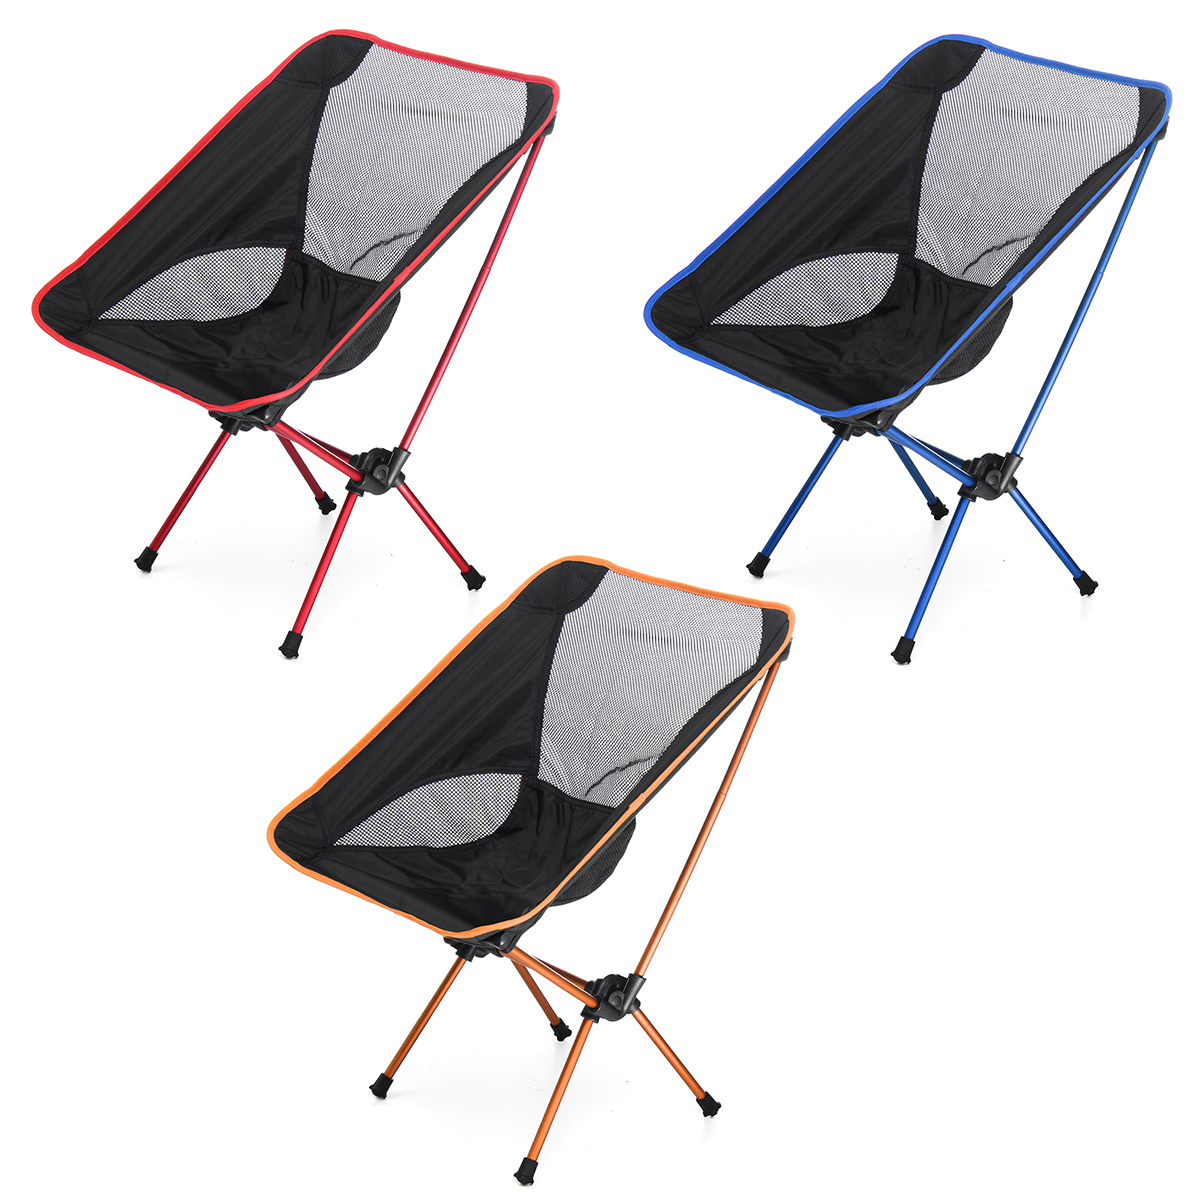 Portable Folding Camping Stool Foldable Fishing Chair Seat with Backpack For Fishing Picnic BBQ Cycling Hiking folding outdoor camping hiking fishing picnic garden bbq stool tripod chair seat cloth chair